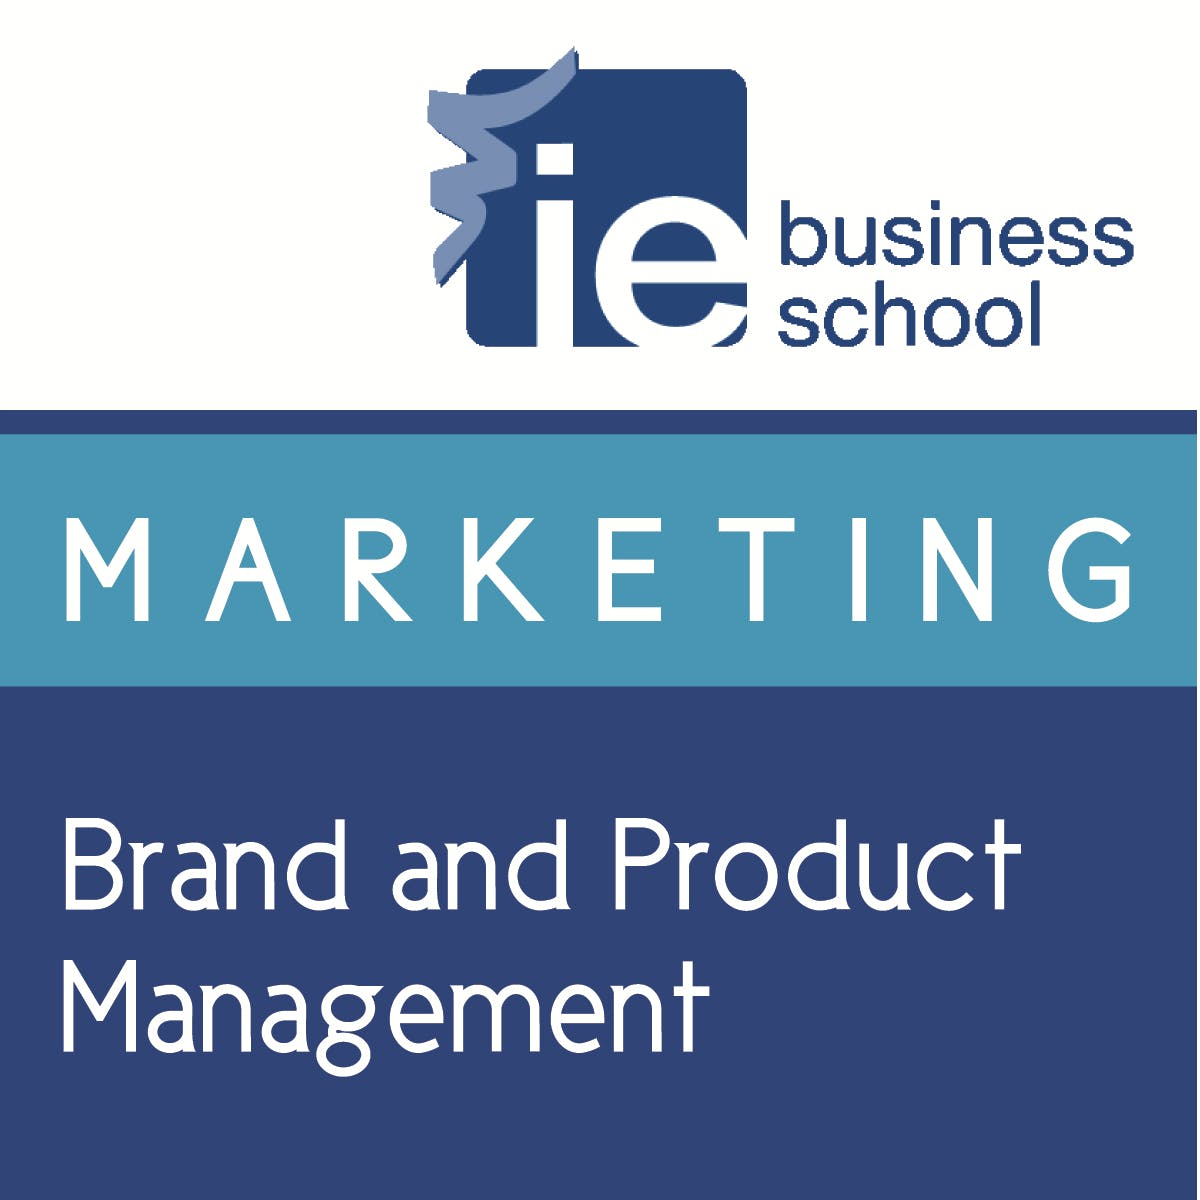 Brand and Product Management